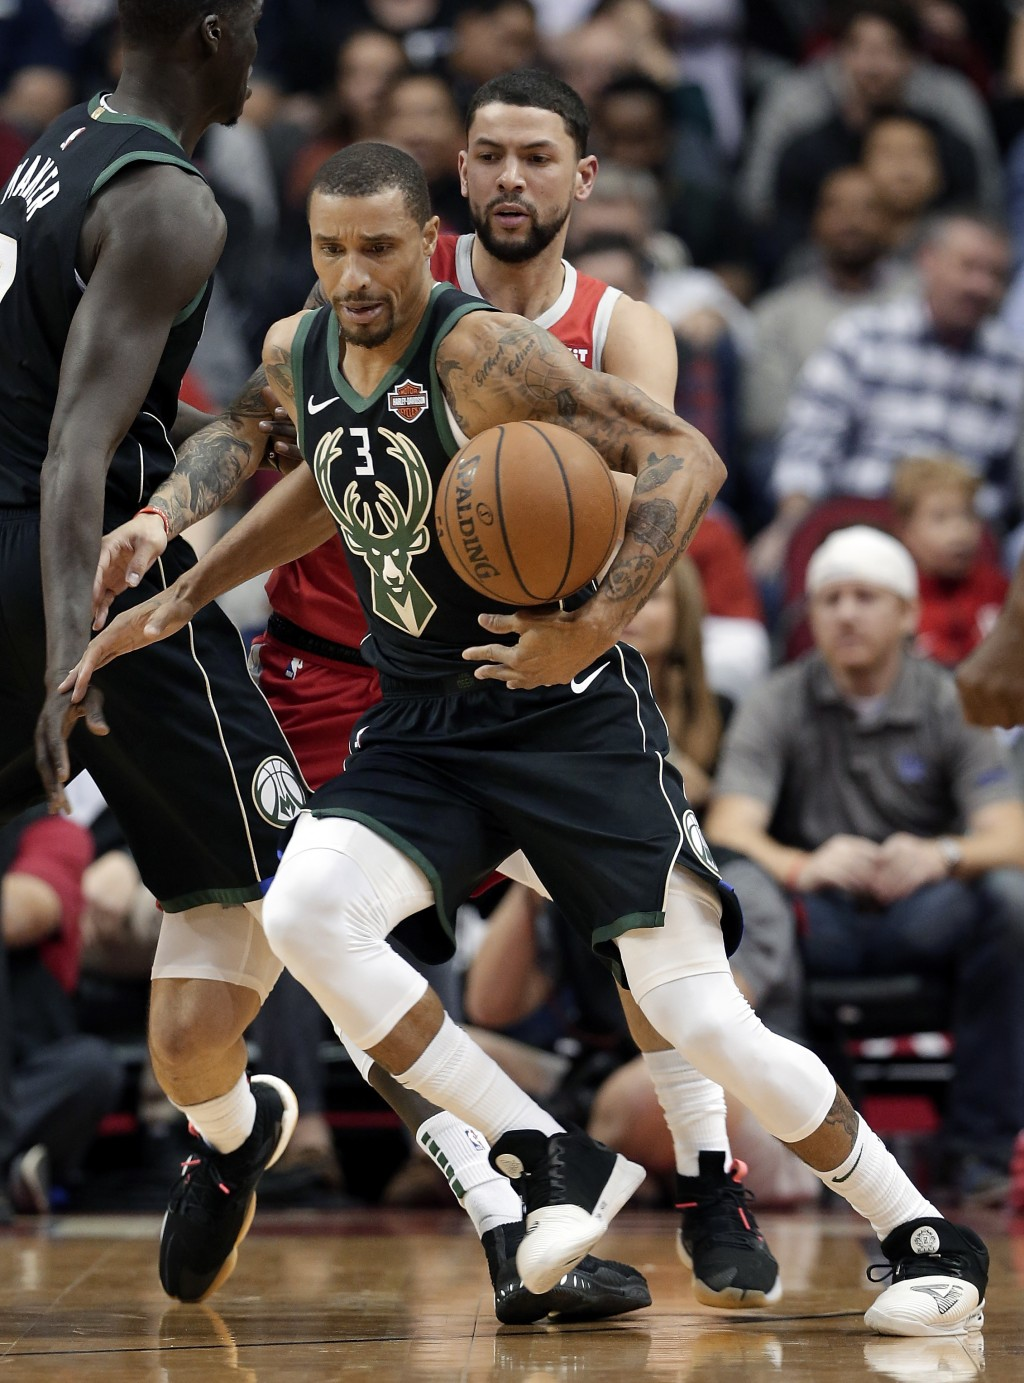 Milwaukee Bucks guard George Hill (3) bobbles the ball as he drives to the basket in front of Houston Rockets guard Austin Rivers, back, during the fi...